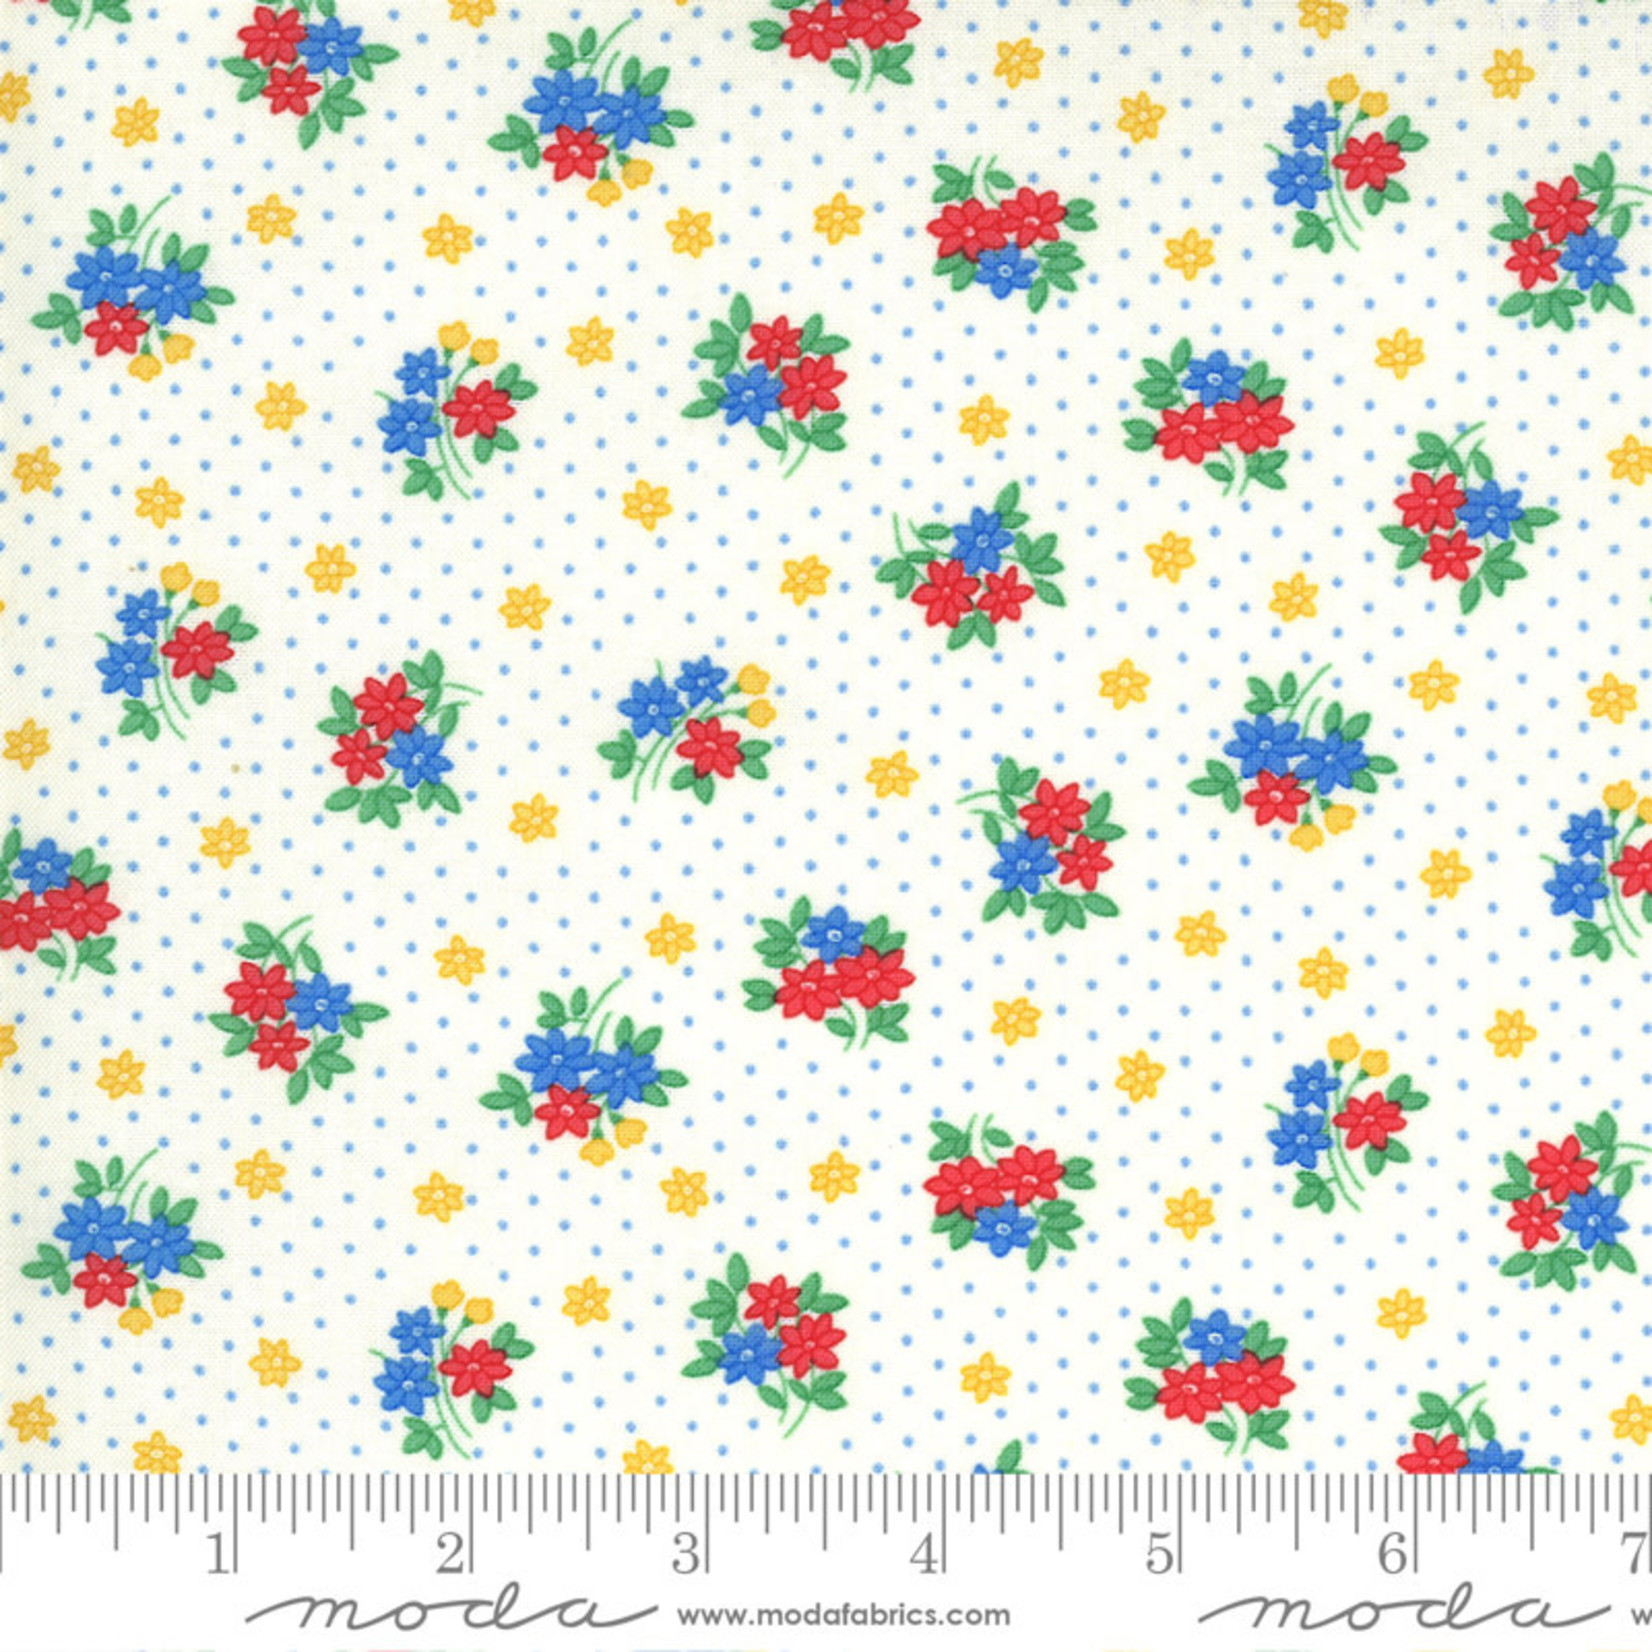 Chloe's Closet 30s Playtime, Bouquet Toss Floral, Eggshell 33595-11 $0.20 per cm or $20/m